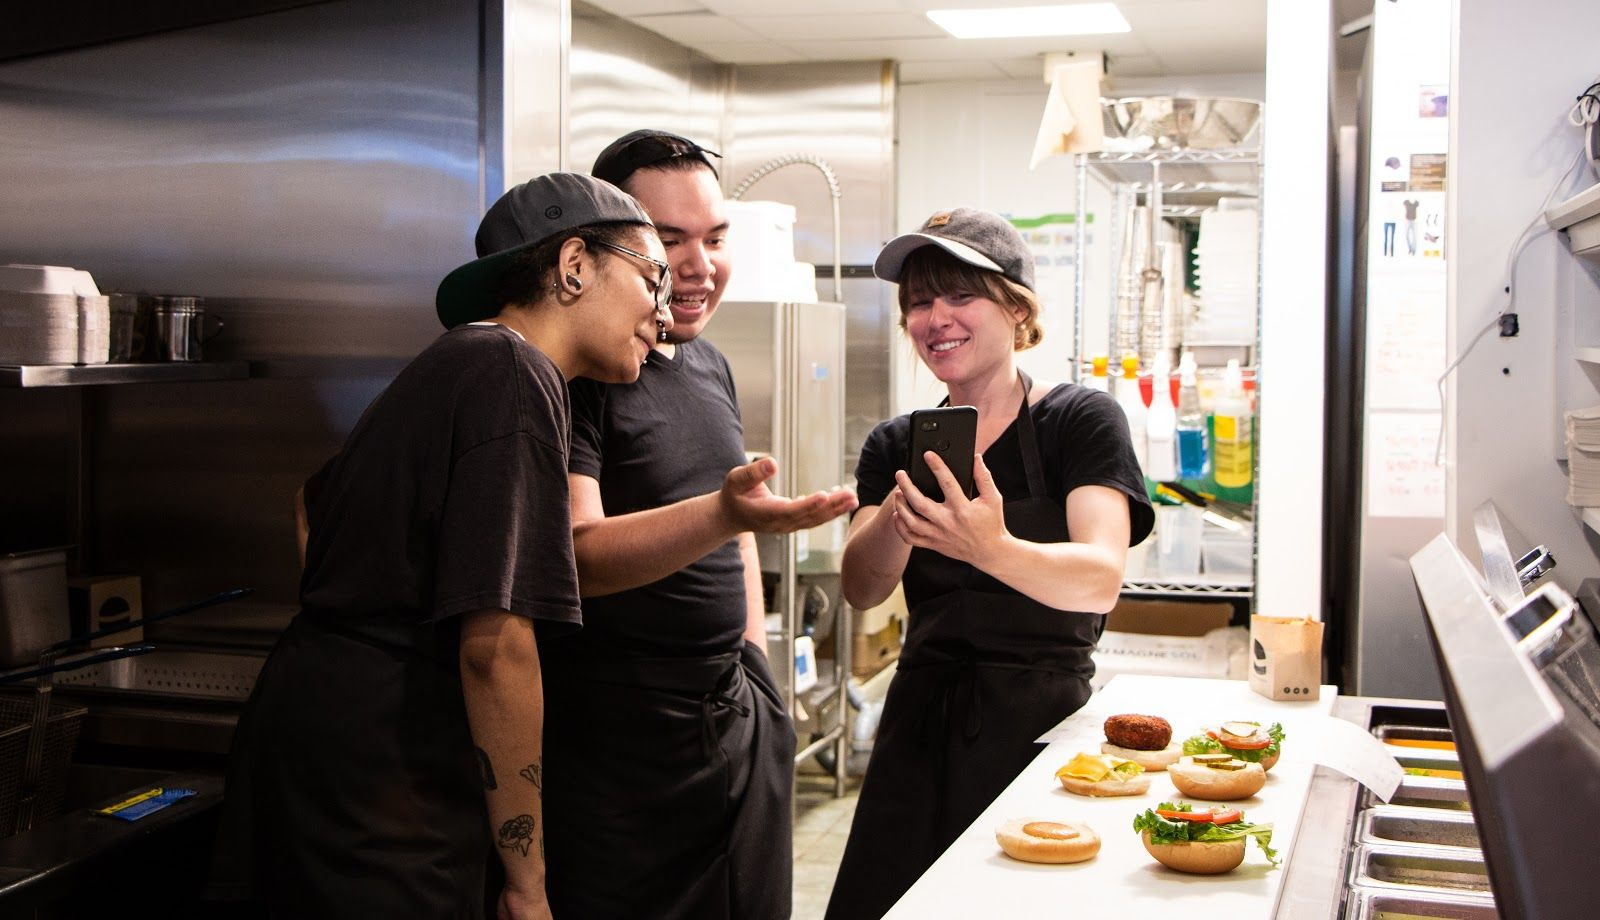 [Case Study] How The Burger's Priest Streamlined Scheduling with 7shifts